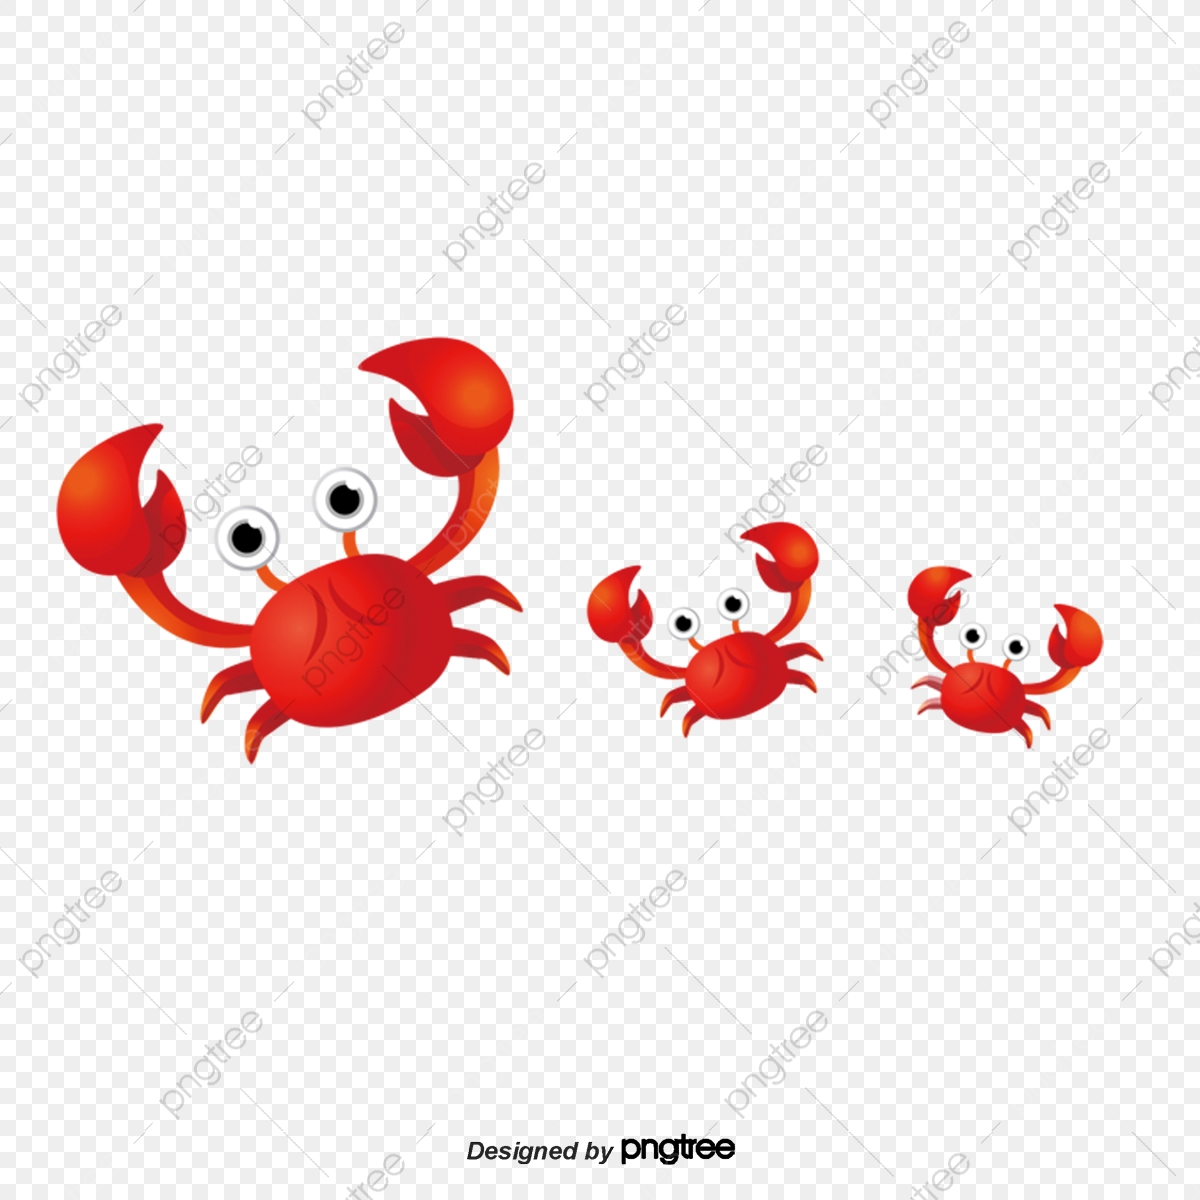 Cute Crab Png - Cartoon Cute Crab, Cartoon, Lovely, Red PNG Transparent Clipart ...